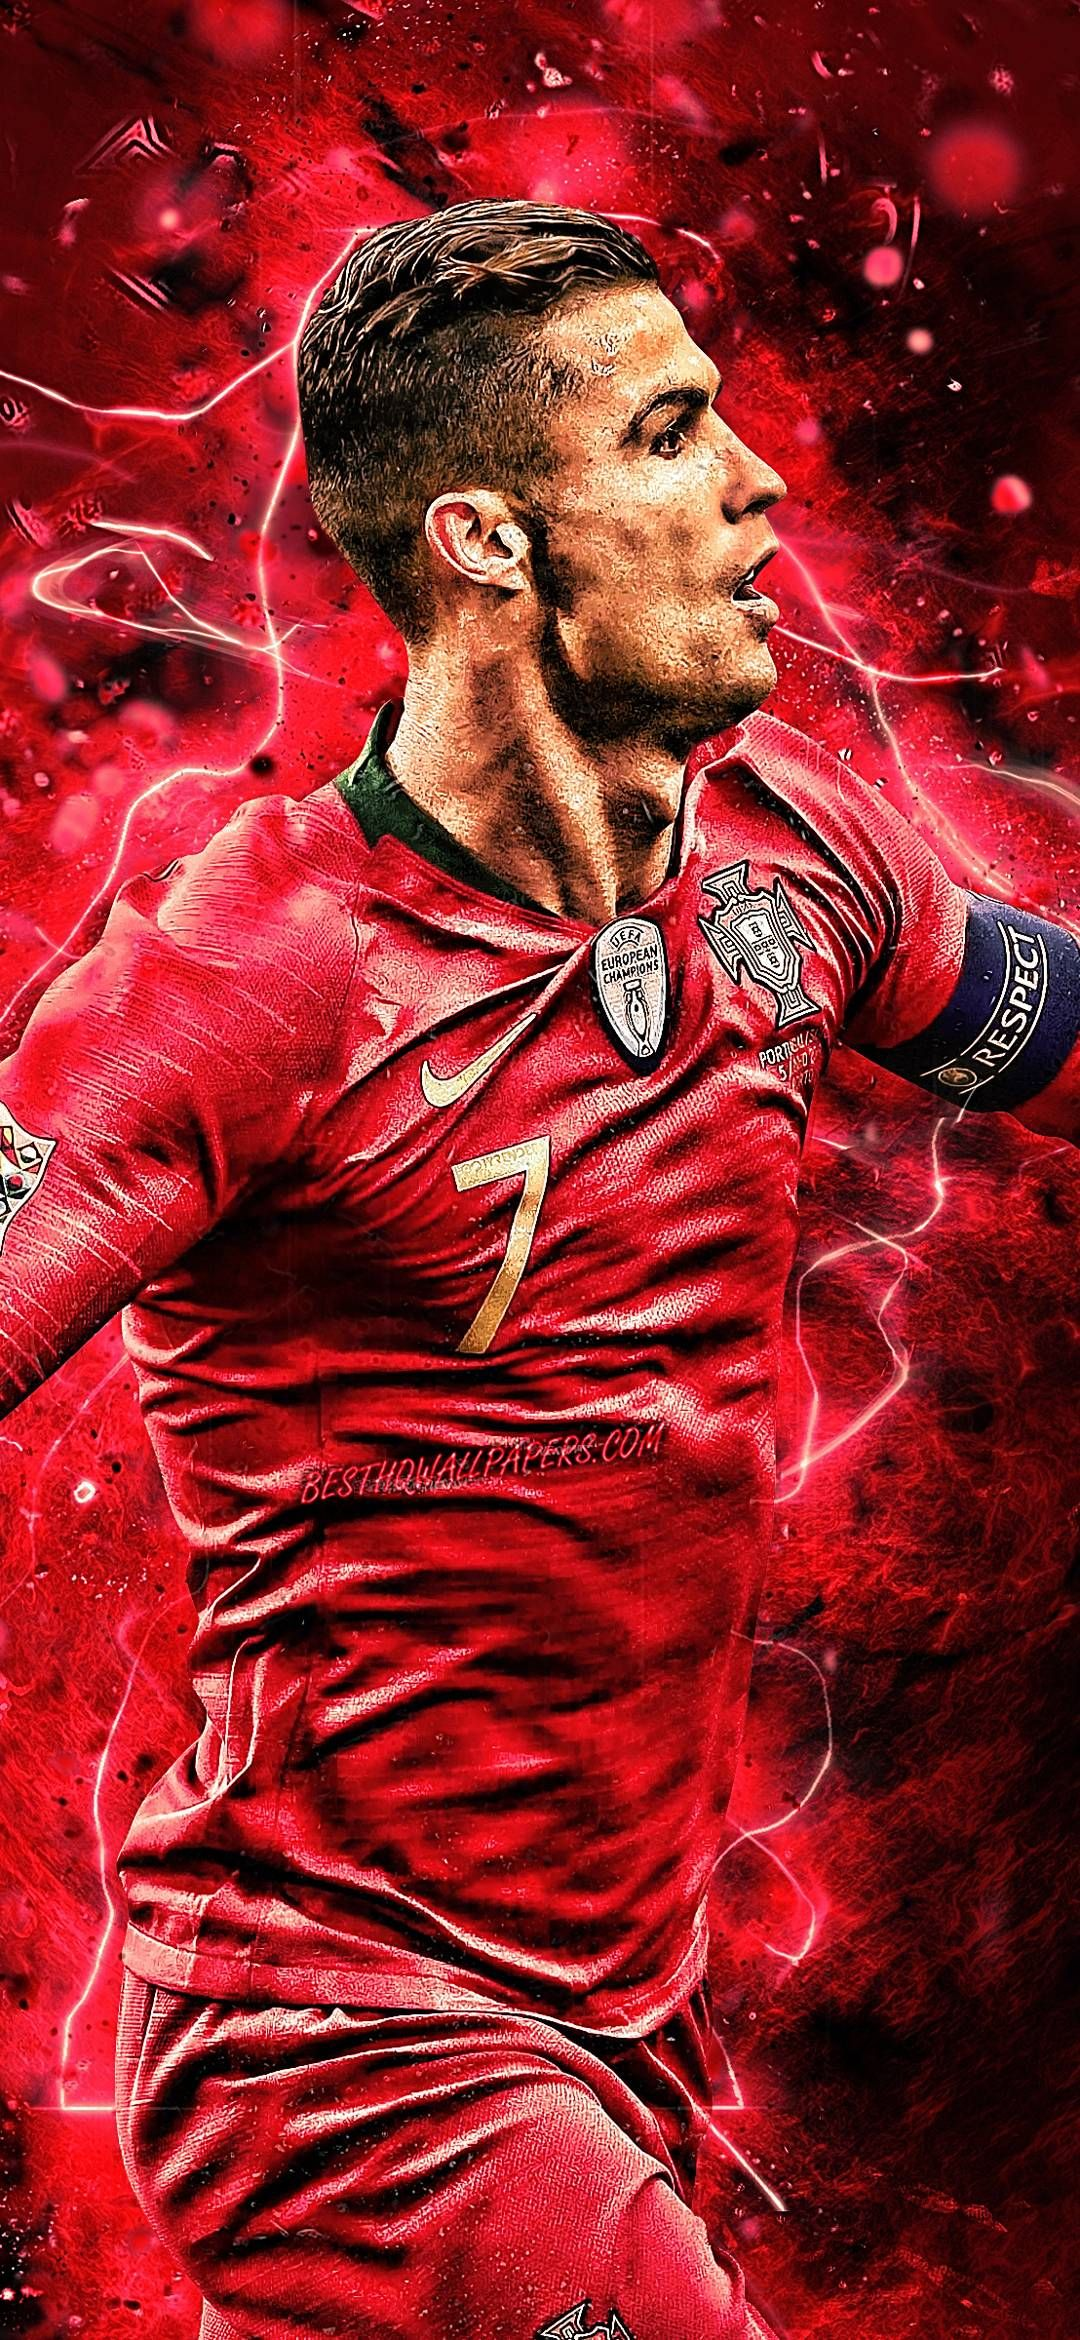 Pin By Throttle Twister On Ronaldo Wallpapers Cristiano Ronaldo Wallpapers Ronaldo Wallpapers Cristiano Ronaldo Hd Wallpapers